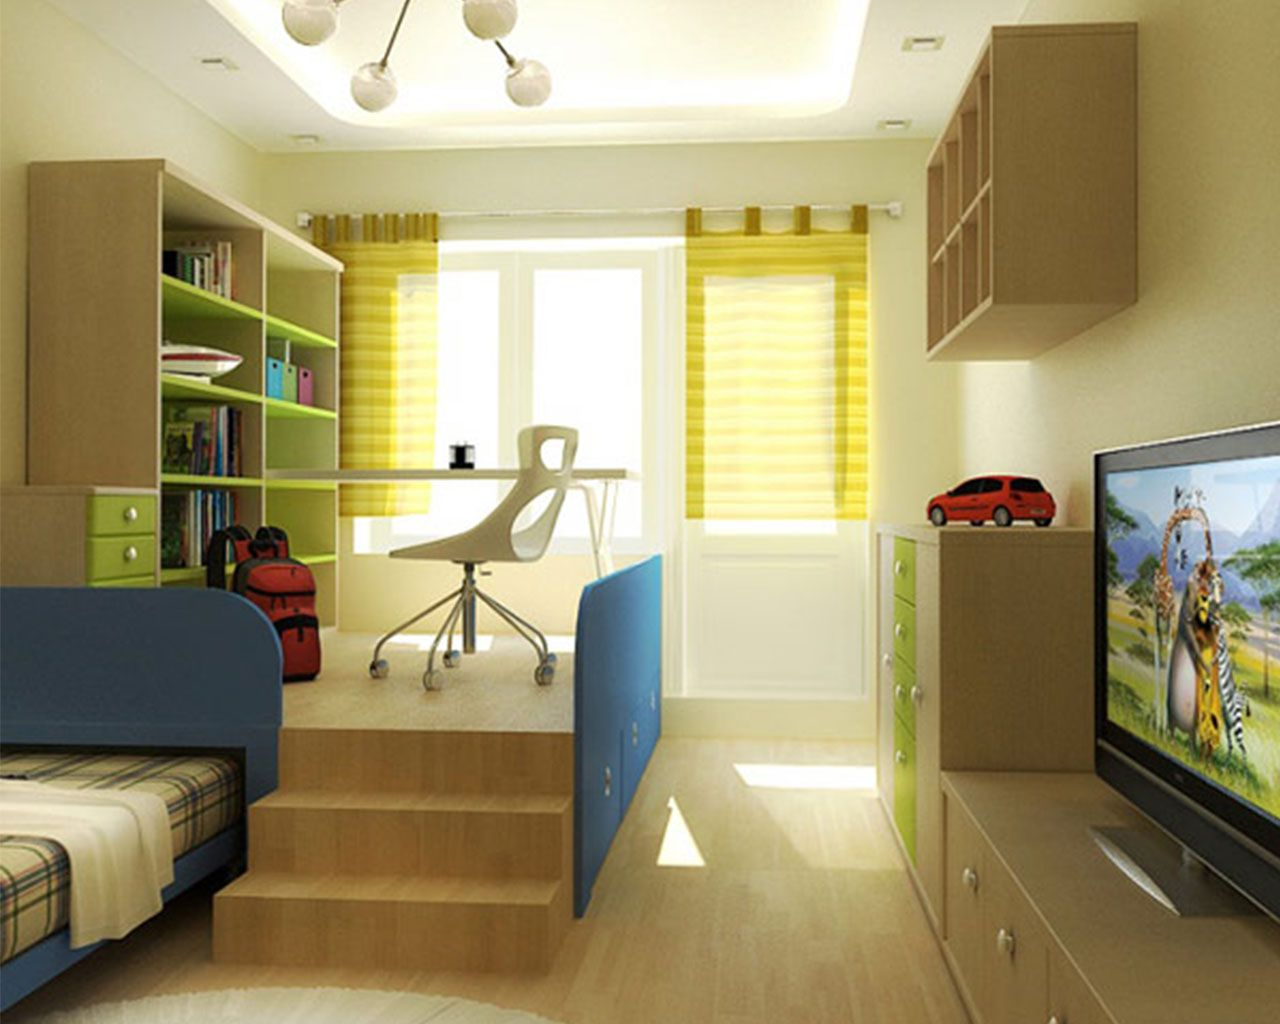 Bedroom Awesome Teenage Bedroom Design Ideas For Boys With Comfy Elevated Bedroom Contemporary